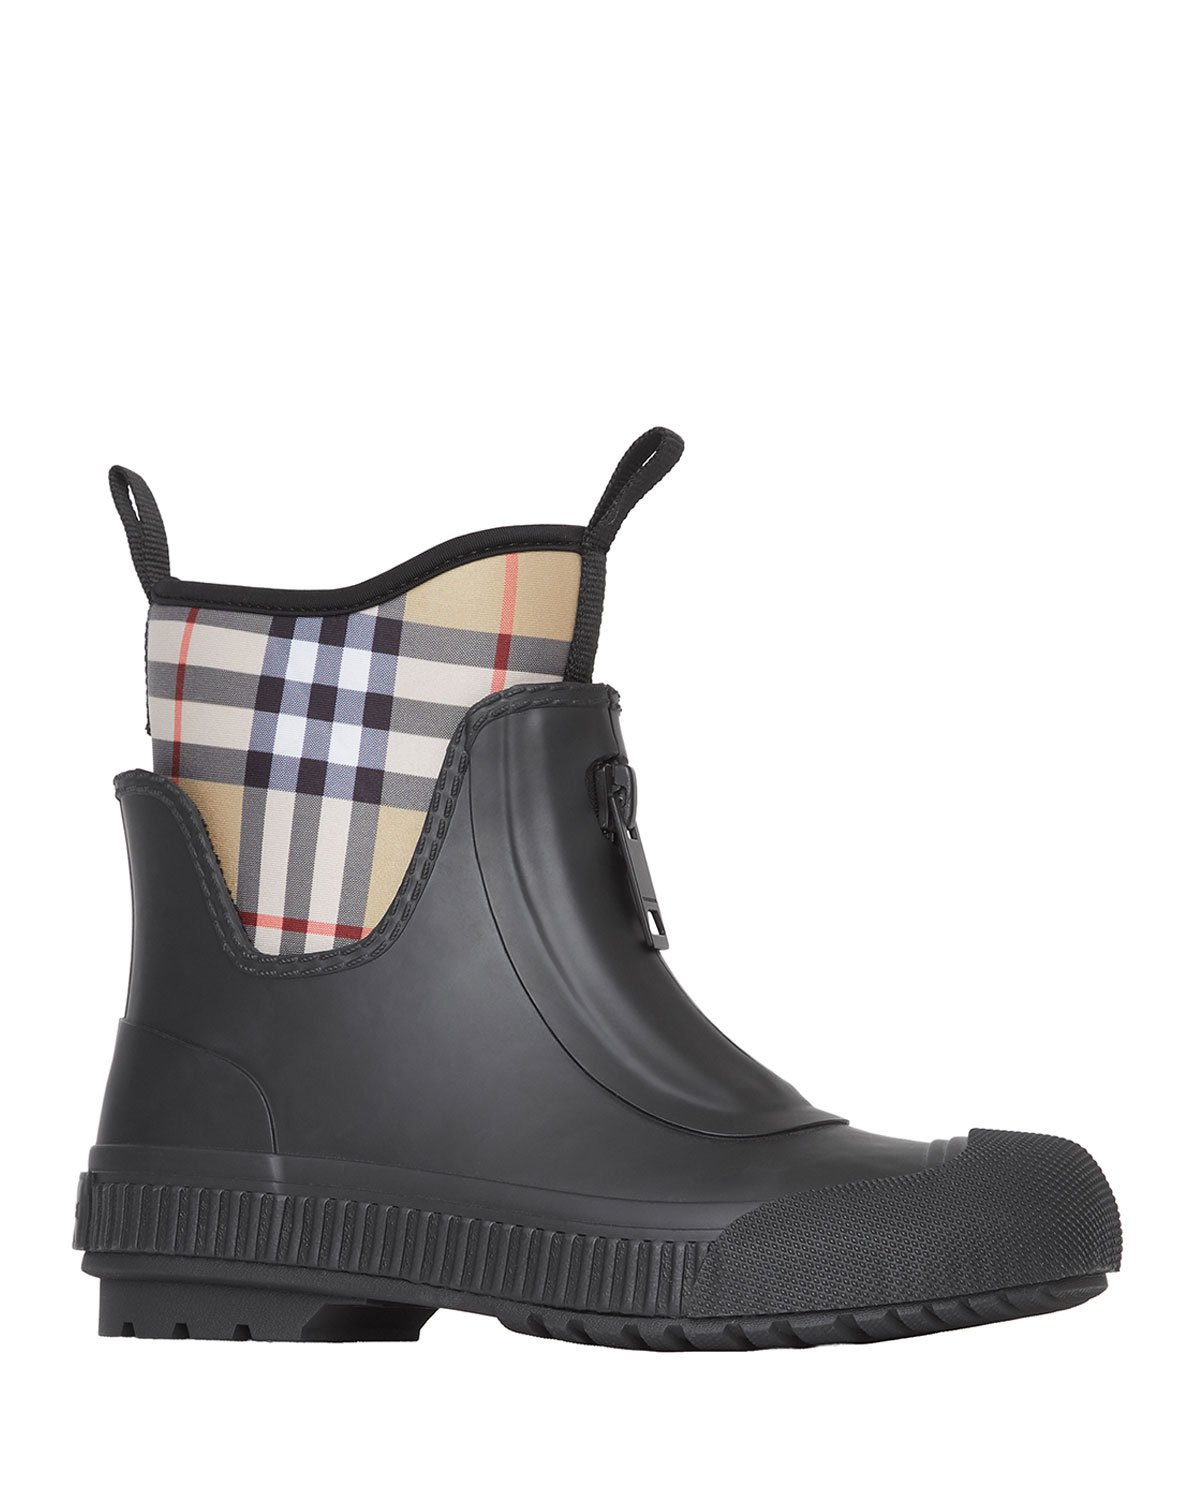 Flinton Check Rain Booties